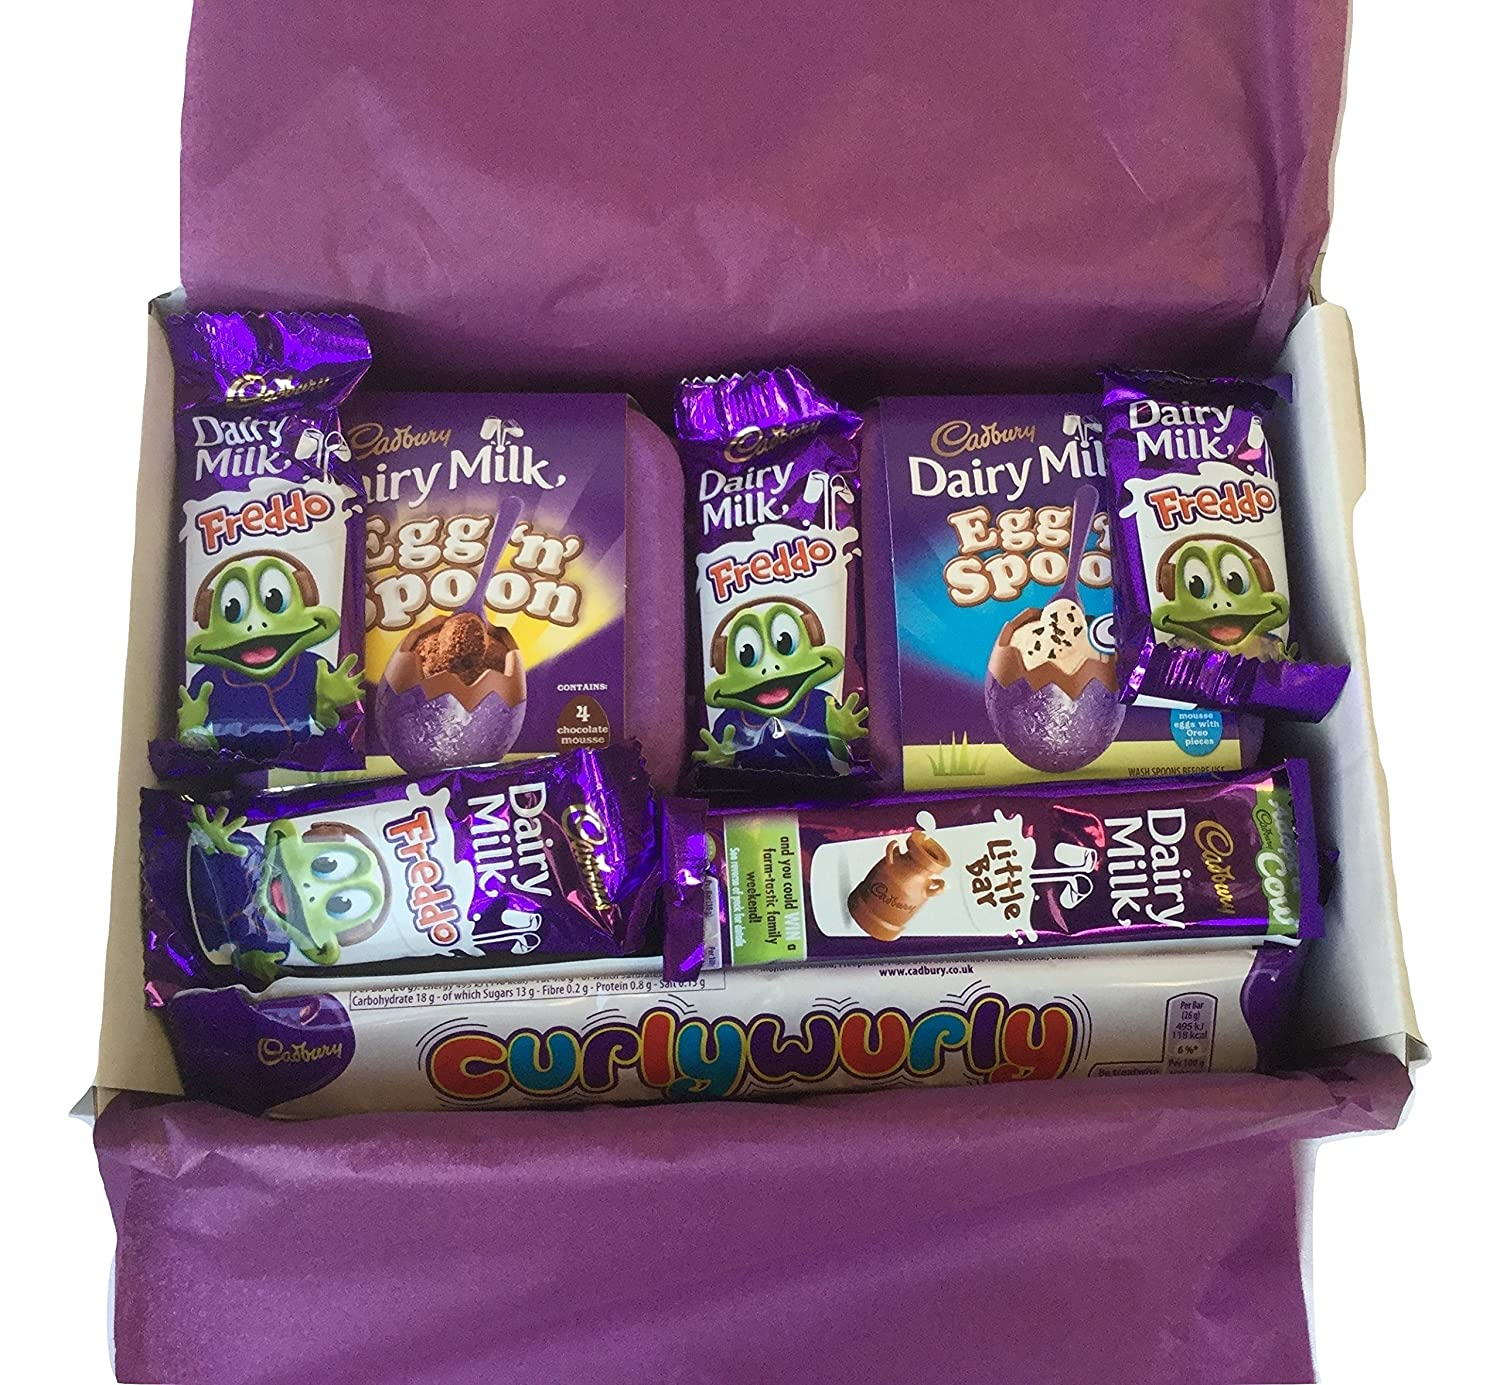 Cadbury easter chocolate selection gift box egg n spoon mini eggs cadbury easter chocolate selection gift box egg n spoon mini eggs curly wurly freddo dairy milk favourite choc sweets by biblegifts negle Image collections